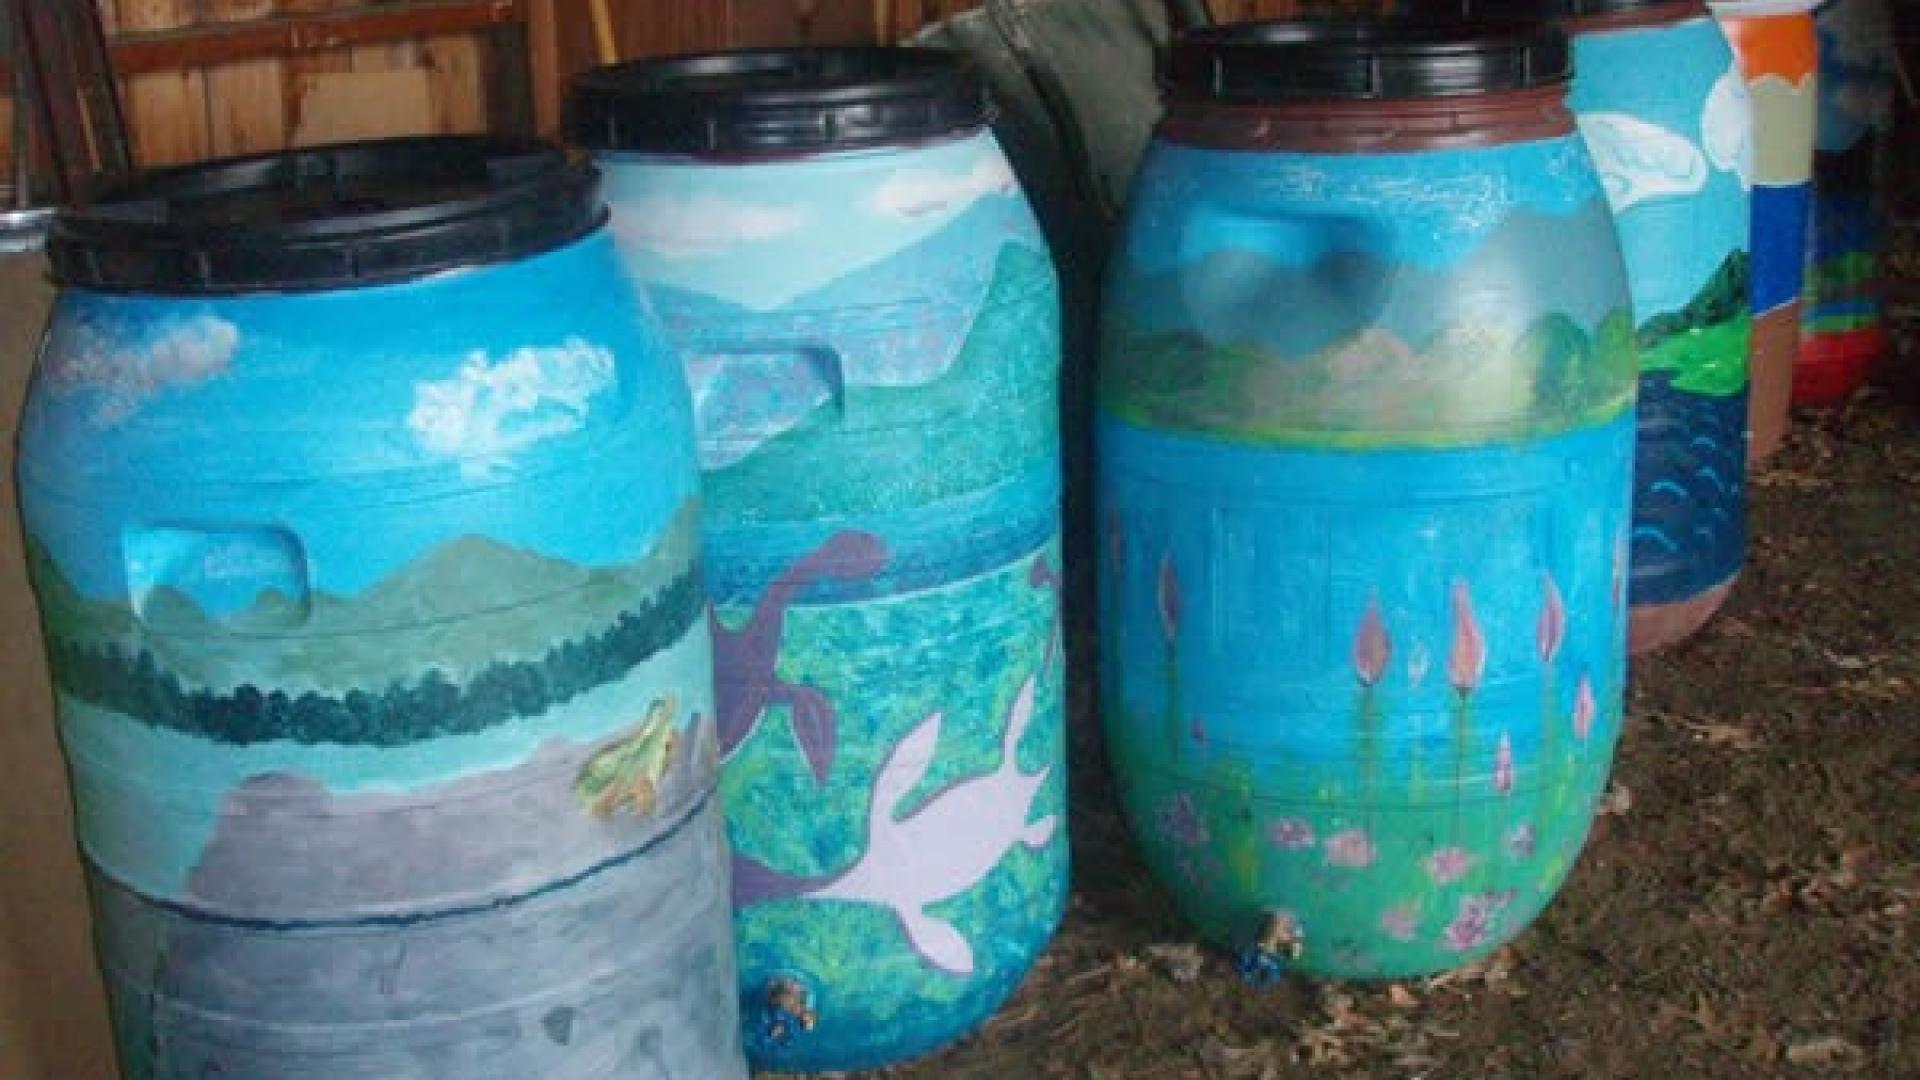 Rain barrels can hold water for later use that would otherwise end up as runoff during a storm.